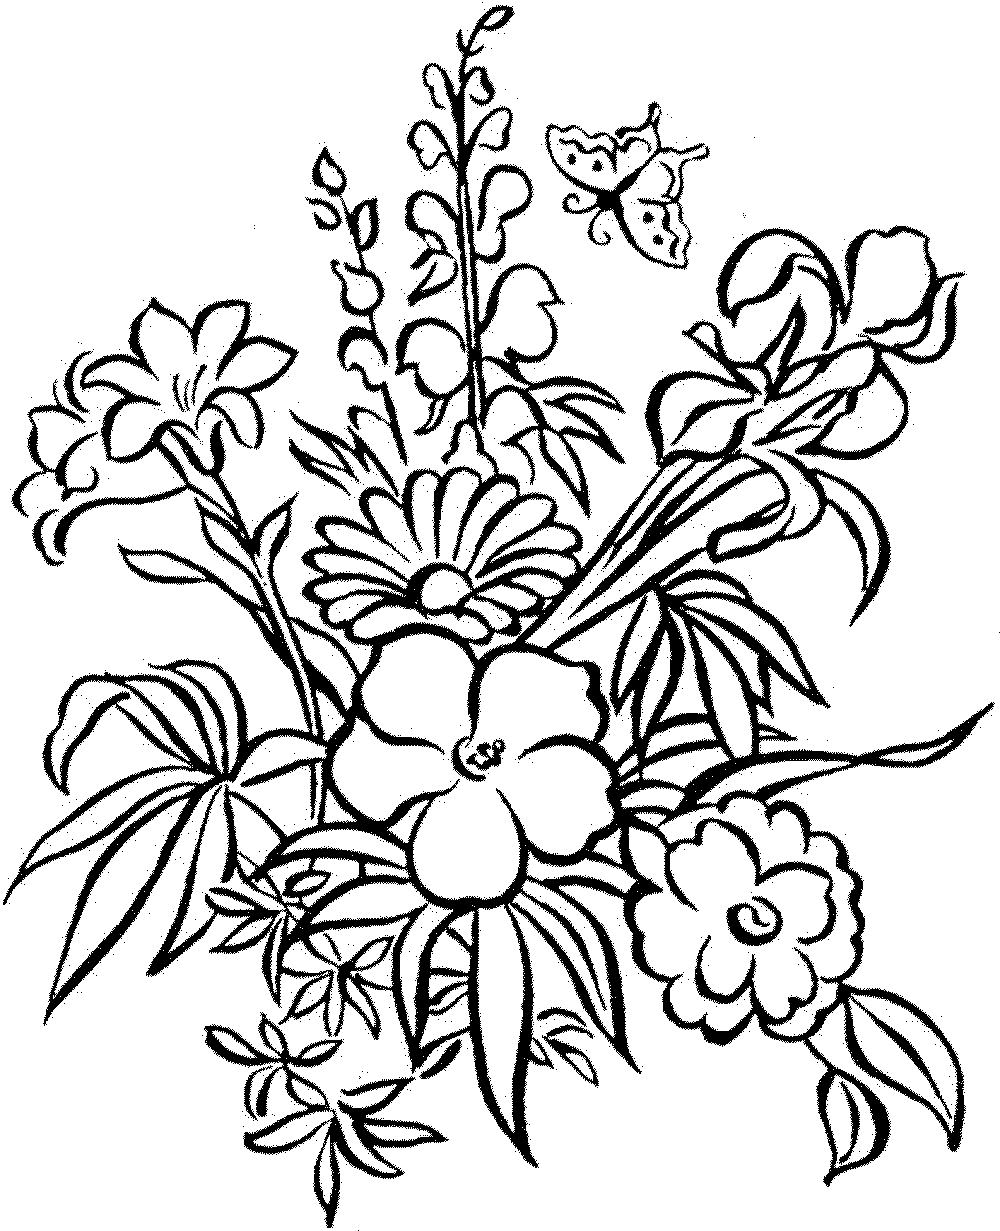 color page flower detailed flower coloring pages to download and print for free flower page color